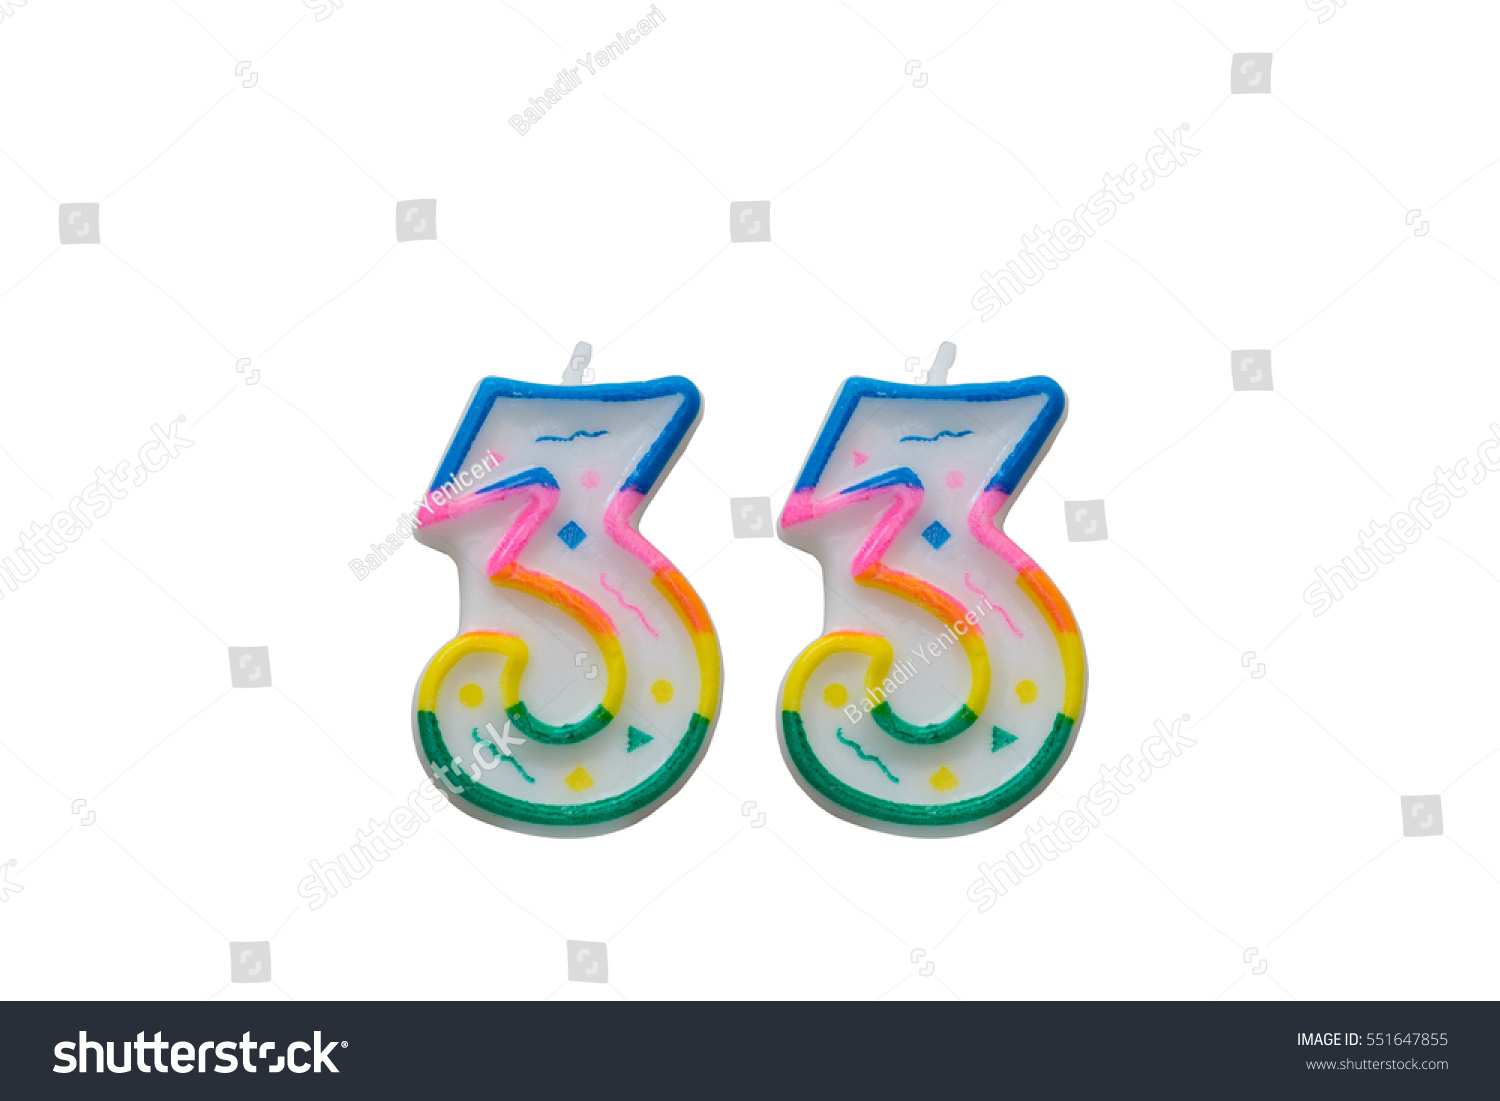 Number 33 free picture of the number thirty three - Colourful Cake Candles Number Thirty Three 33 Isolated On White Background 551647855